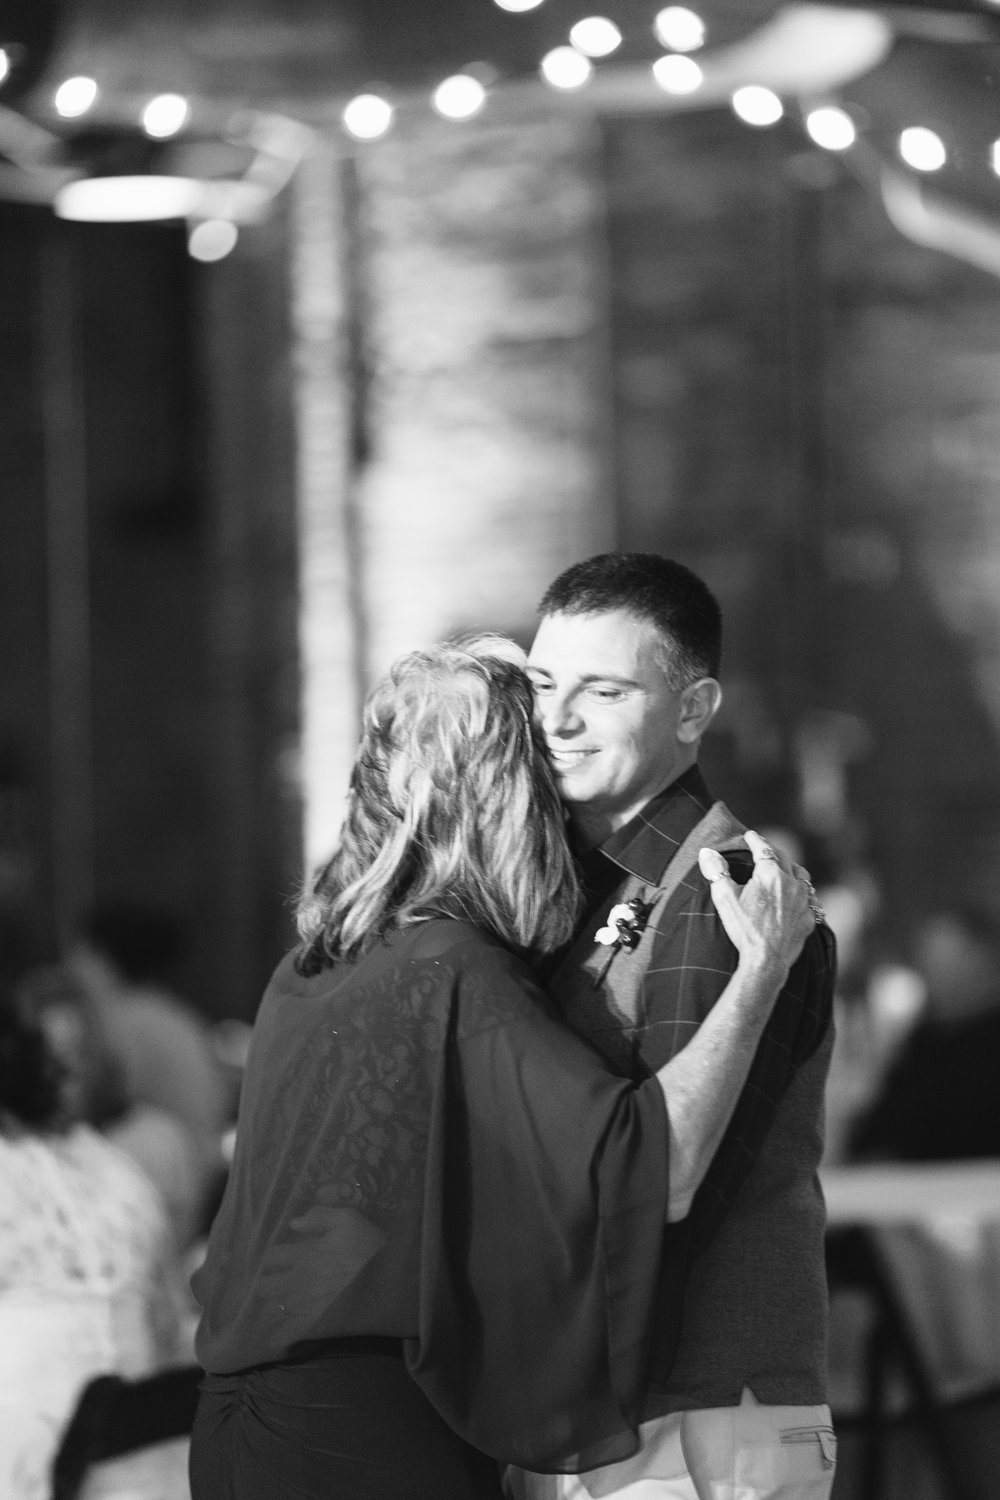 Lauren_Jeremy_Standard_Wedding_Knoxville_Abigail_Malone_Photography_FIlm-551-2.jpg